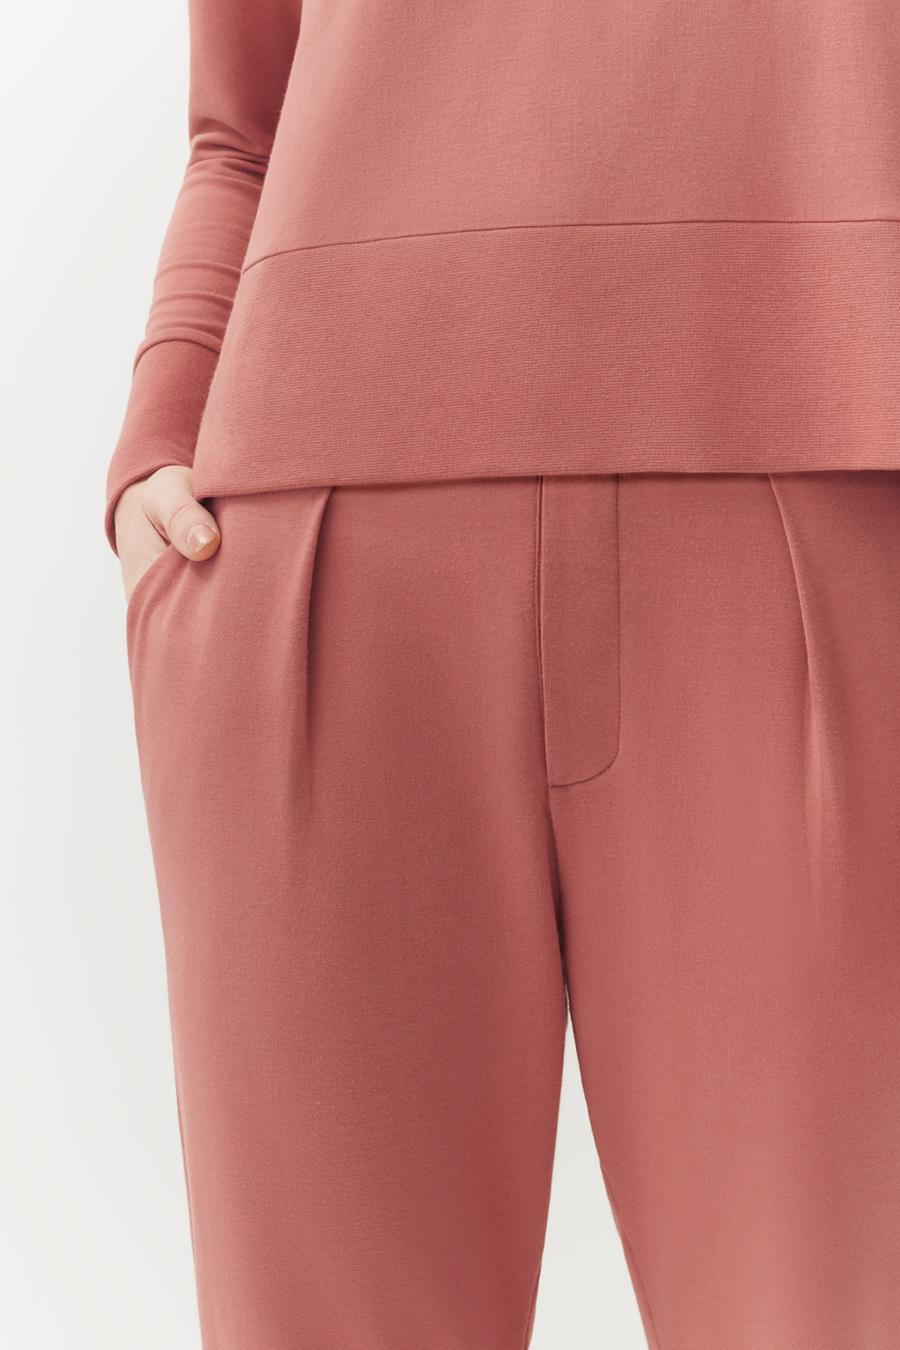 Women's French Terry Pleated Front Pant in Passion Fruit | Size: 4